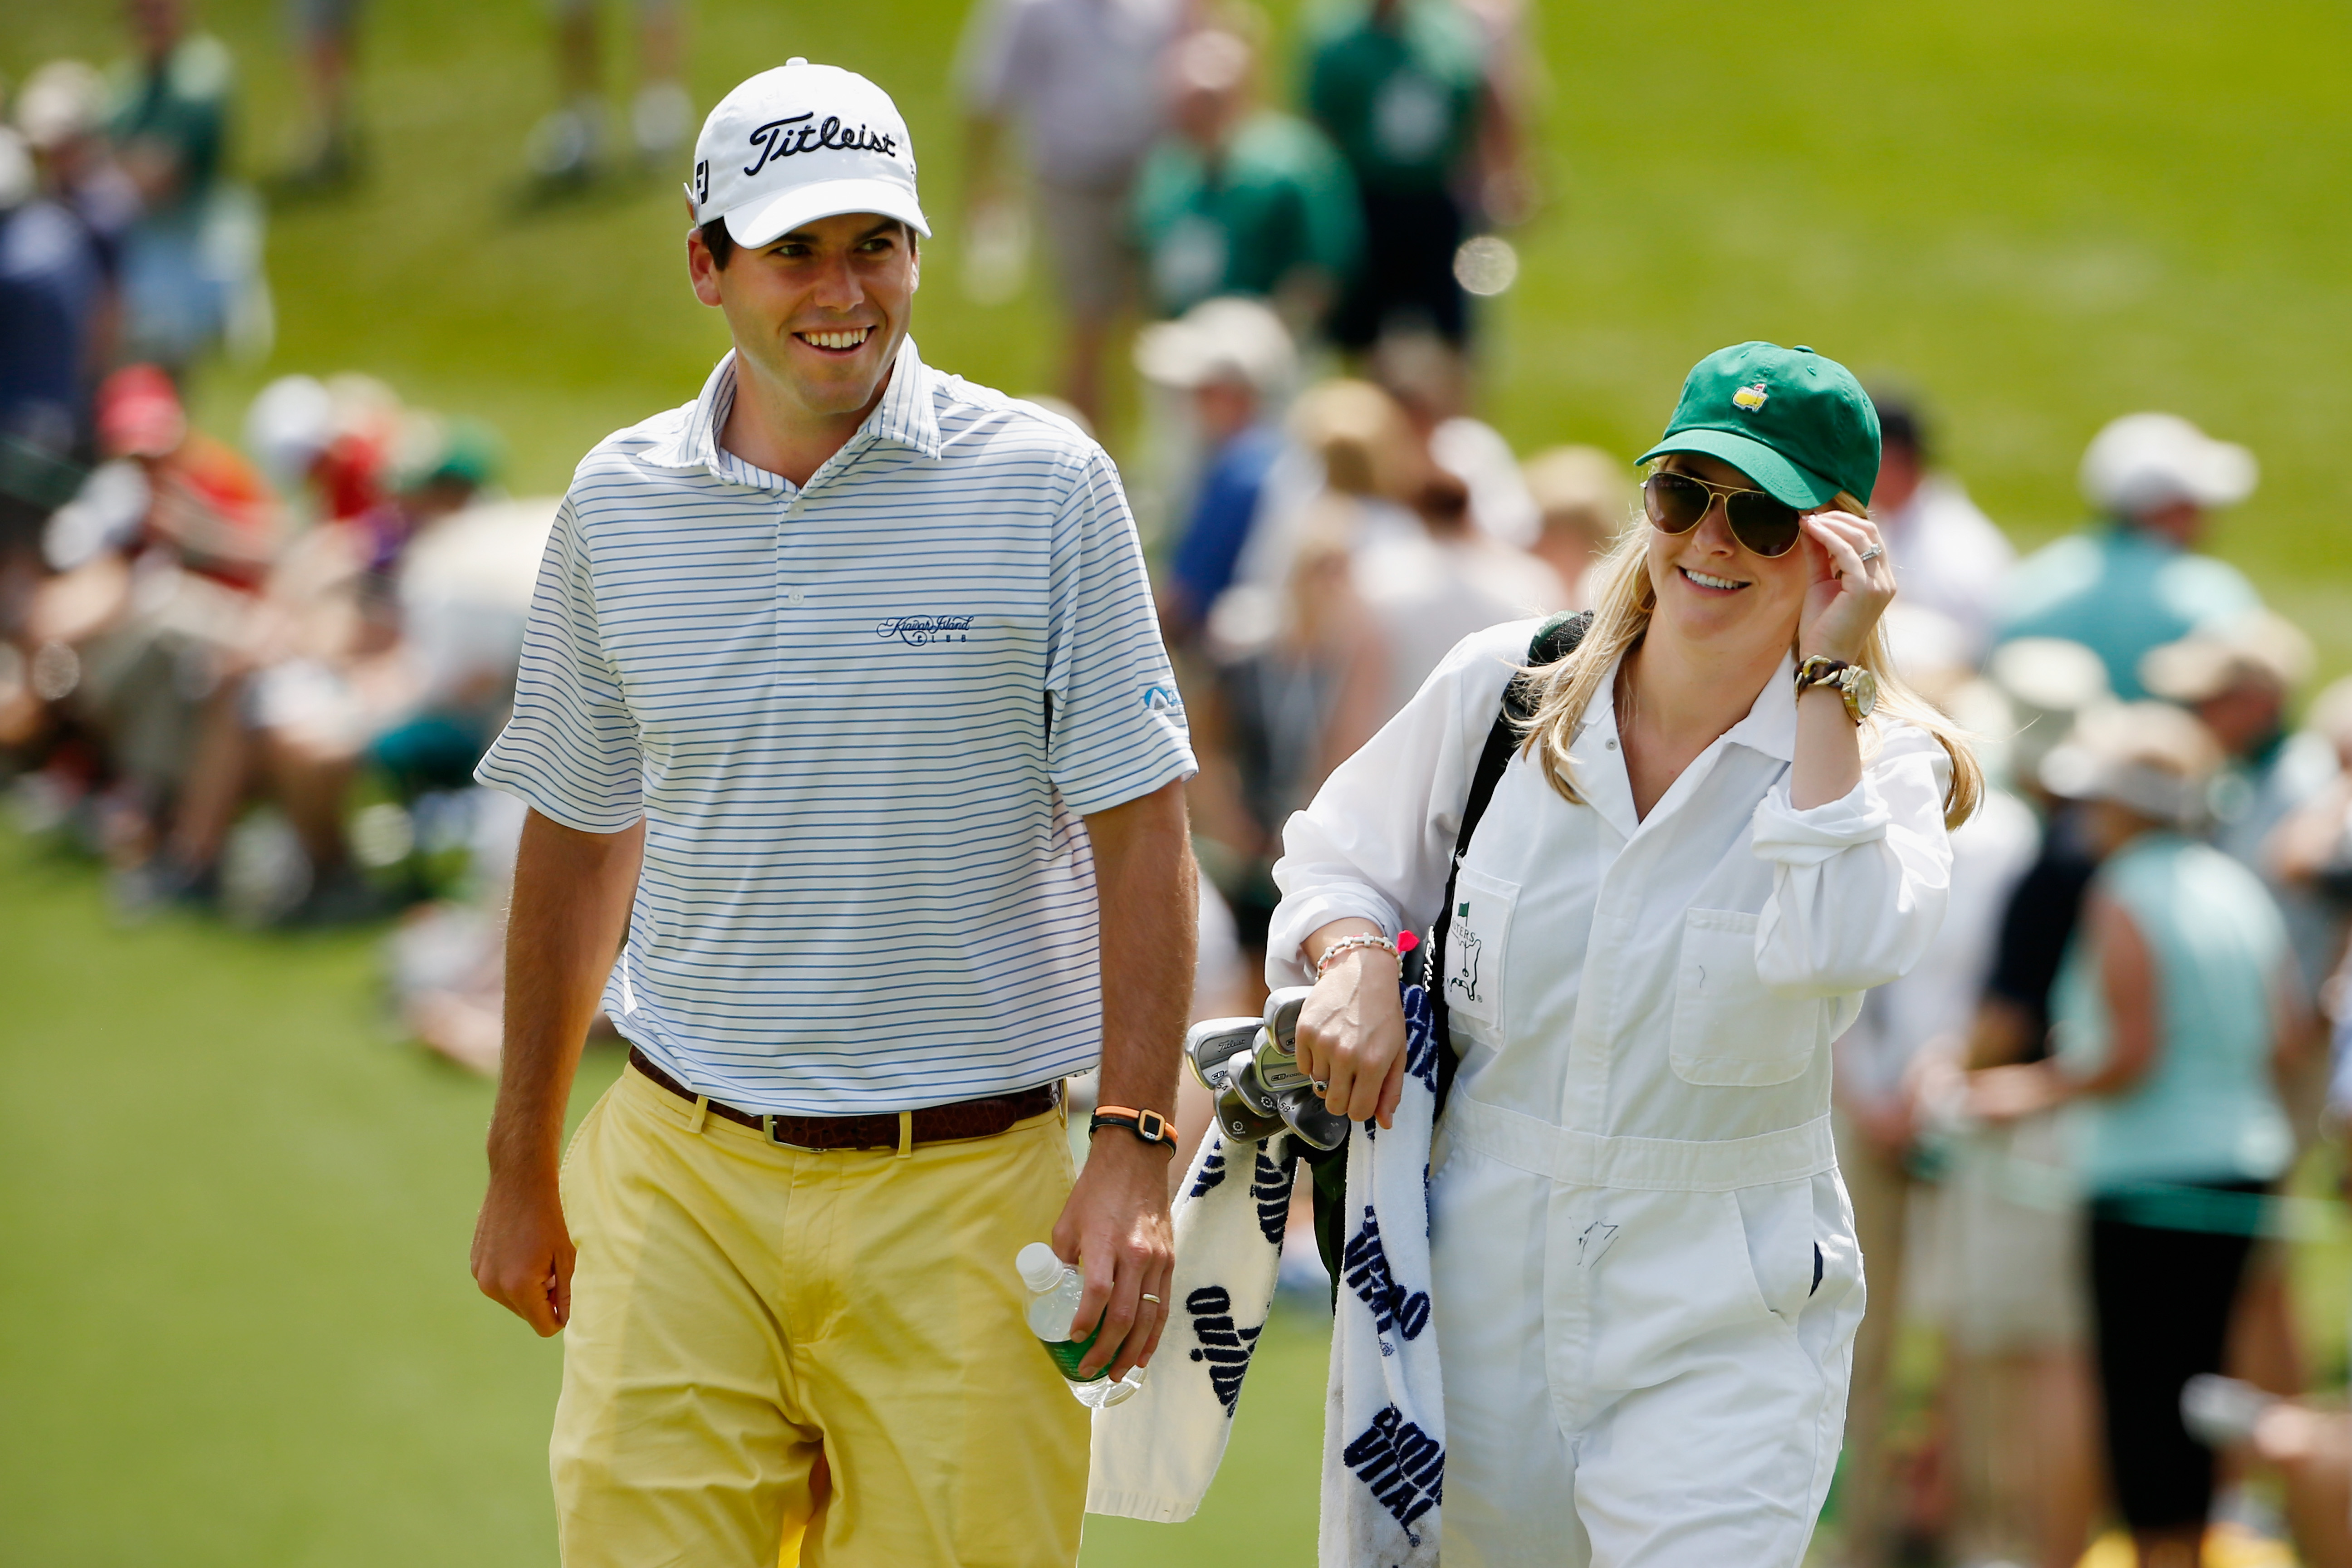 Ben martin and wife